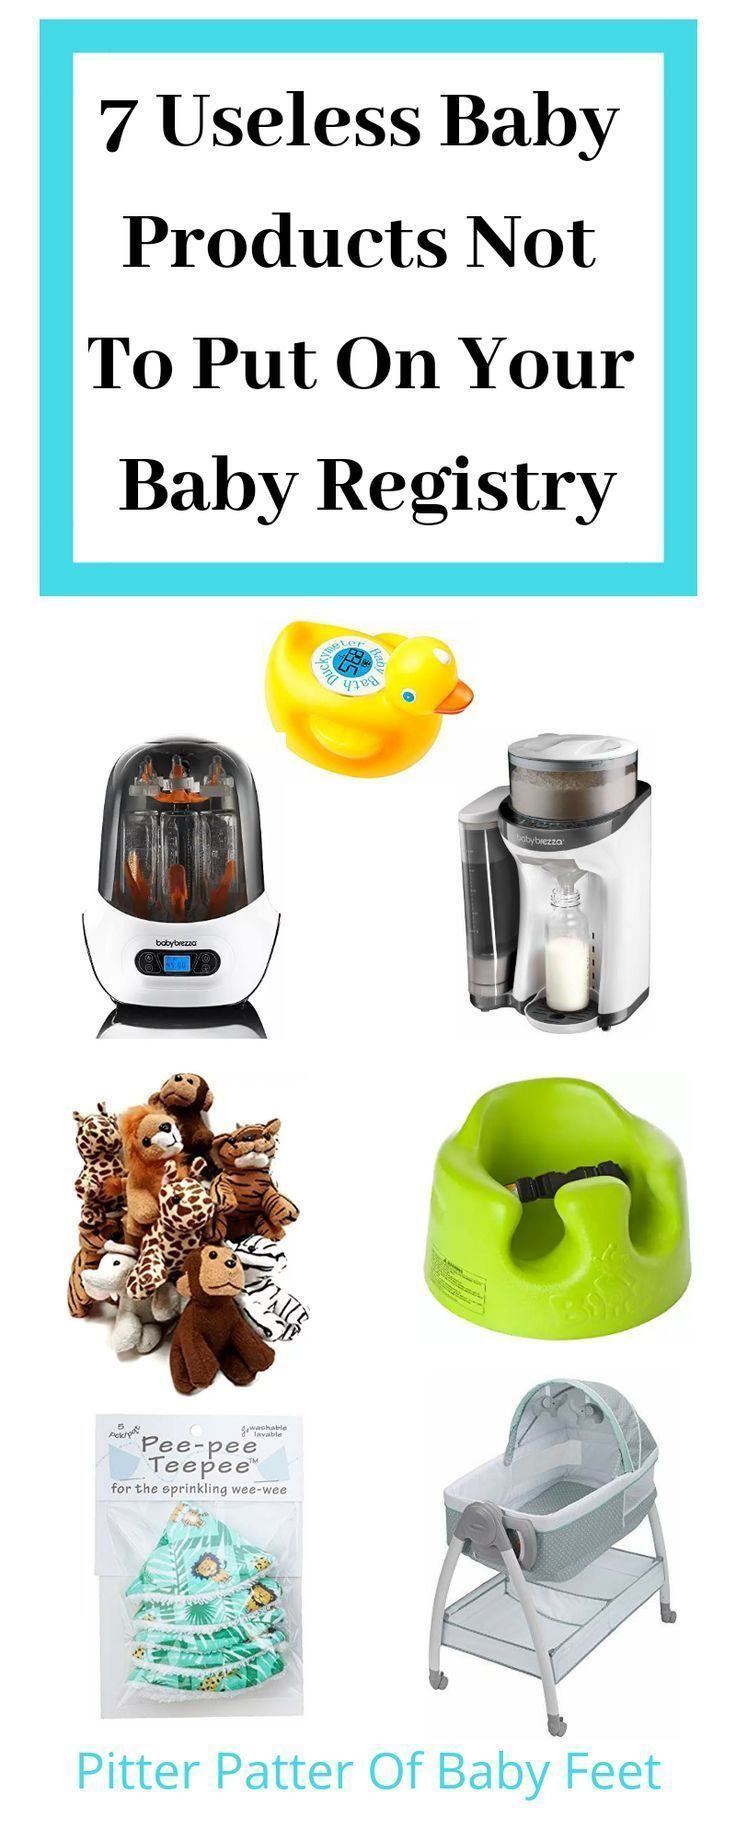 7 Useless Baby Products Not To Put On Your Baby Registry ...